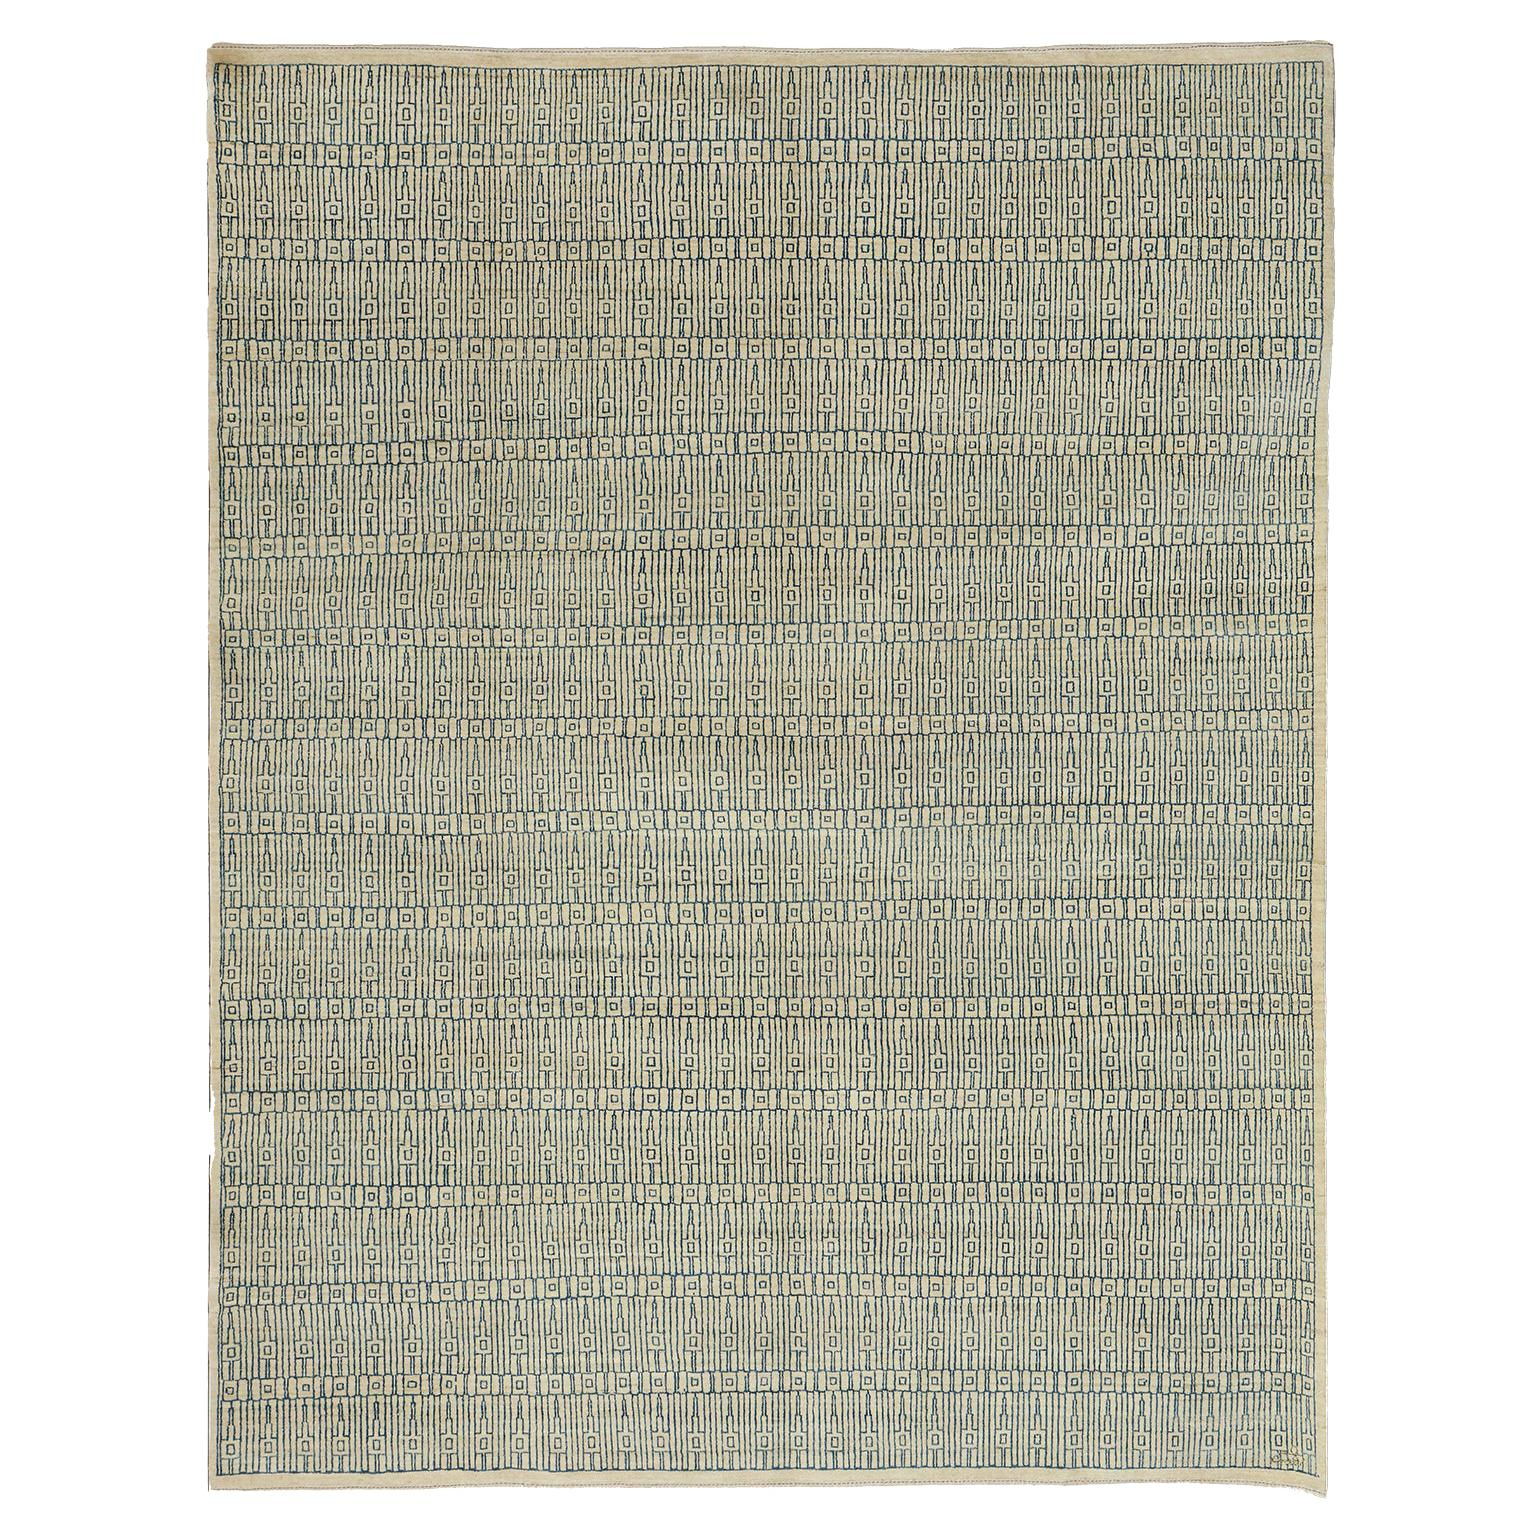 Modern Architectural Blue and Cream Pure Wool Area Rug by Orley Shabahang